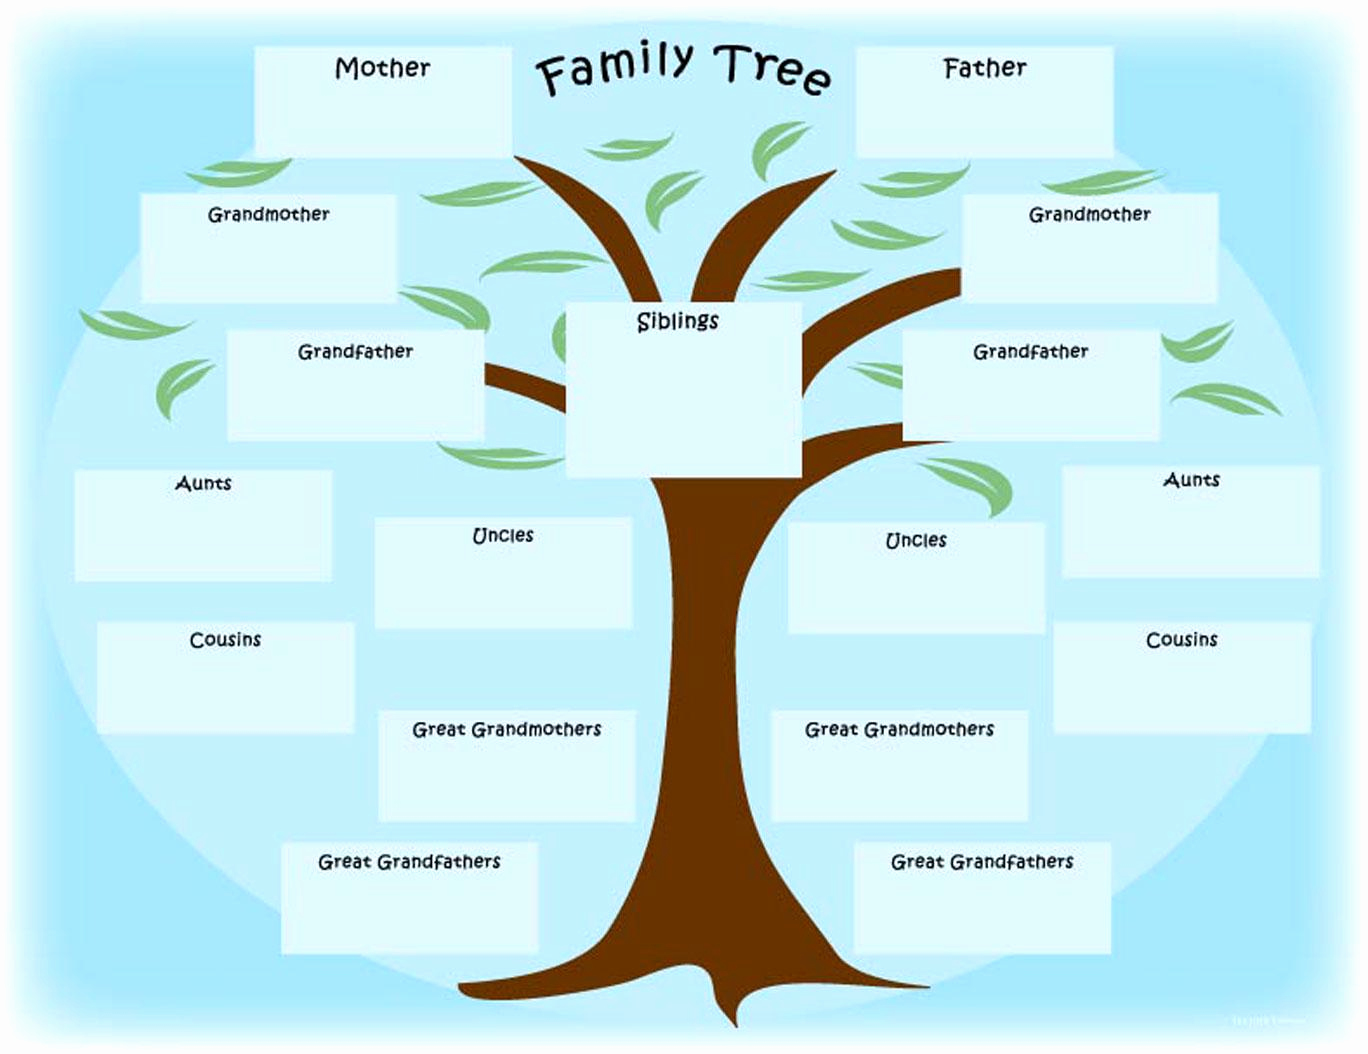 Free Family Tree Template Excel Unique 15 Free Family Tree Template Chart & Diagram In Pdf